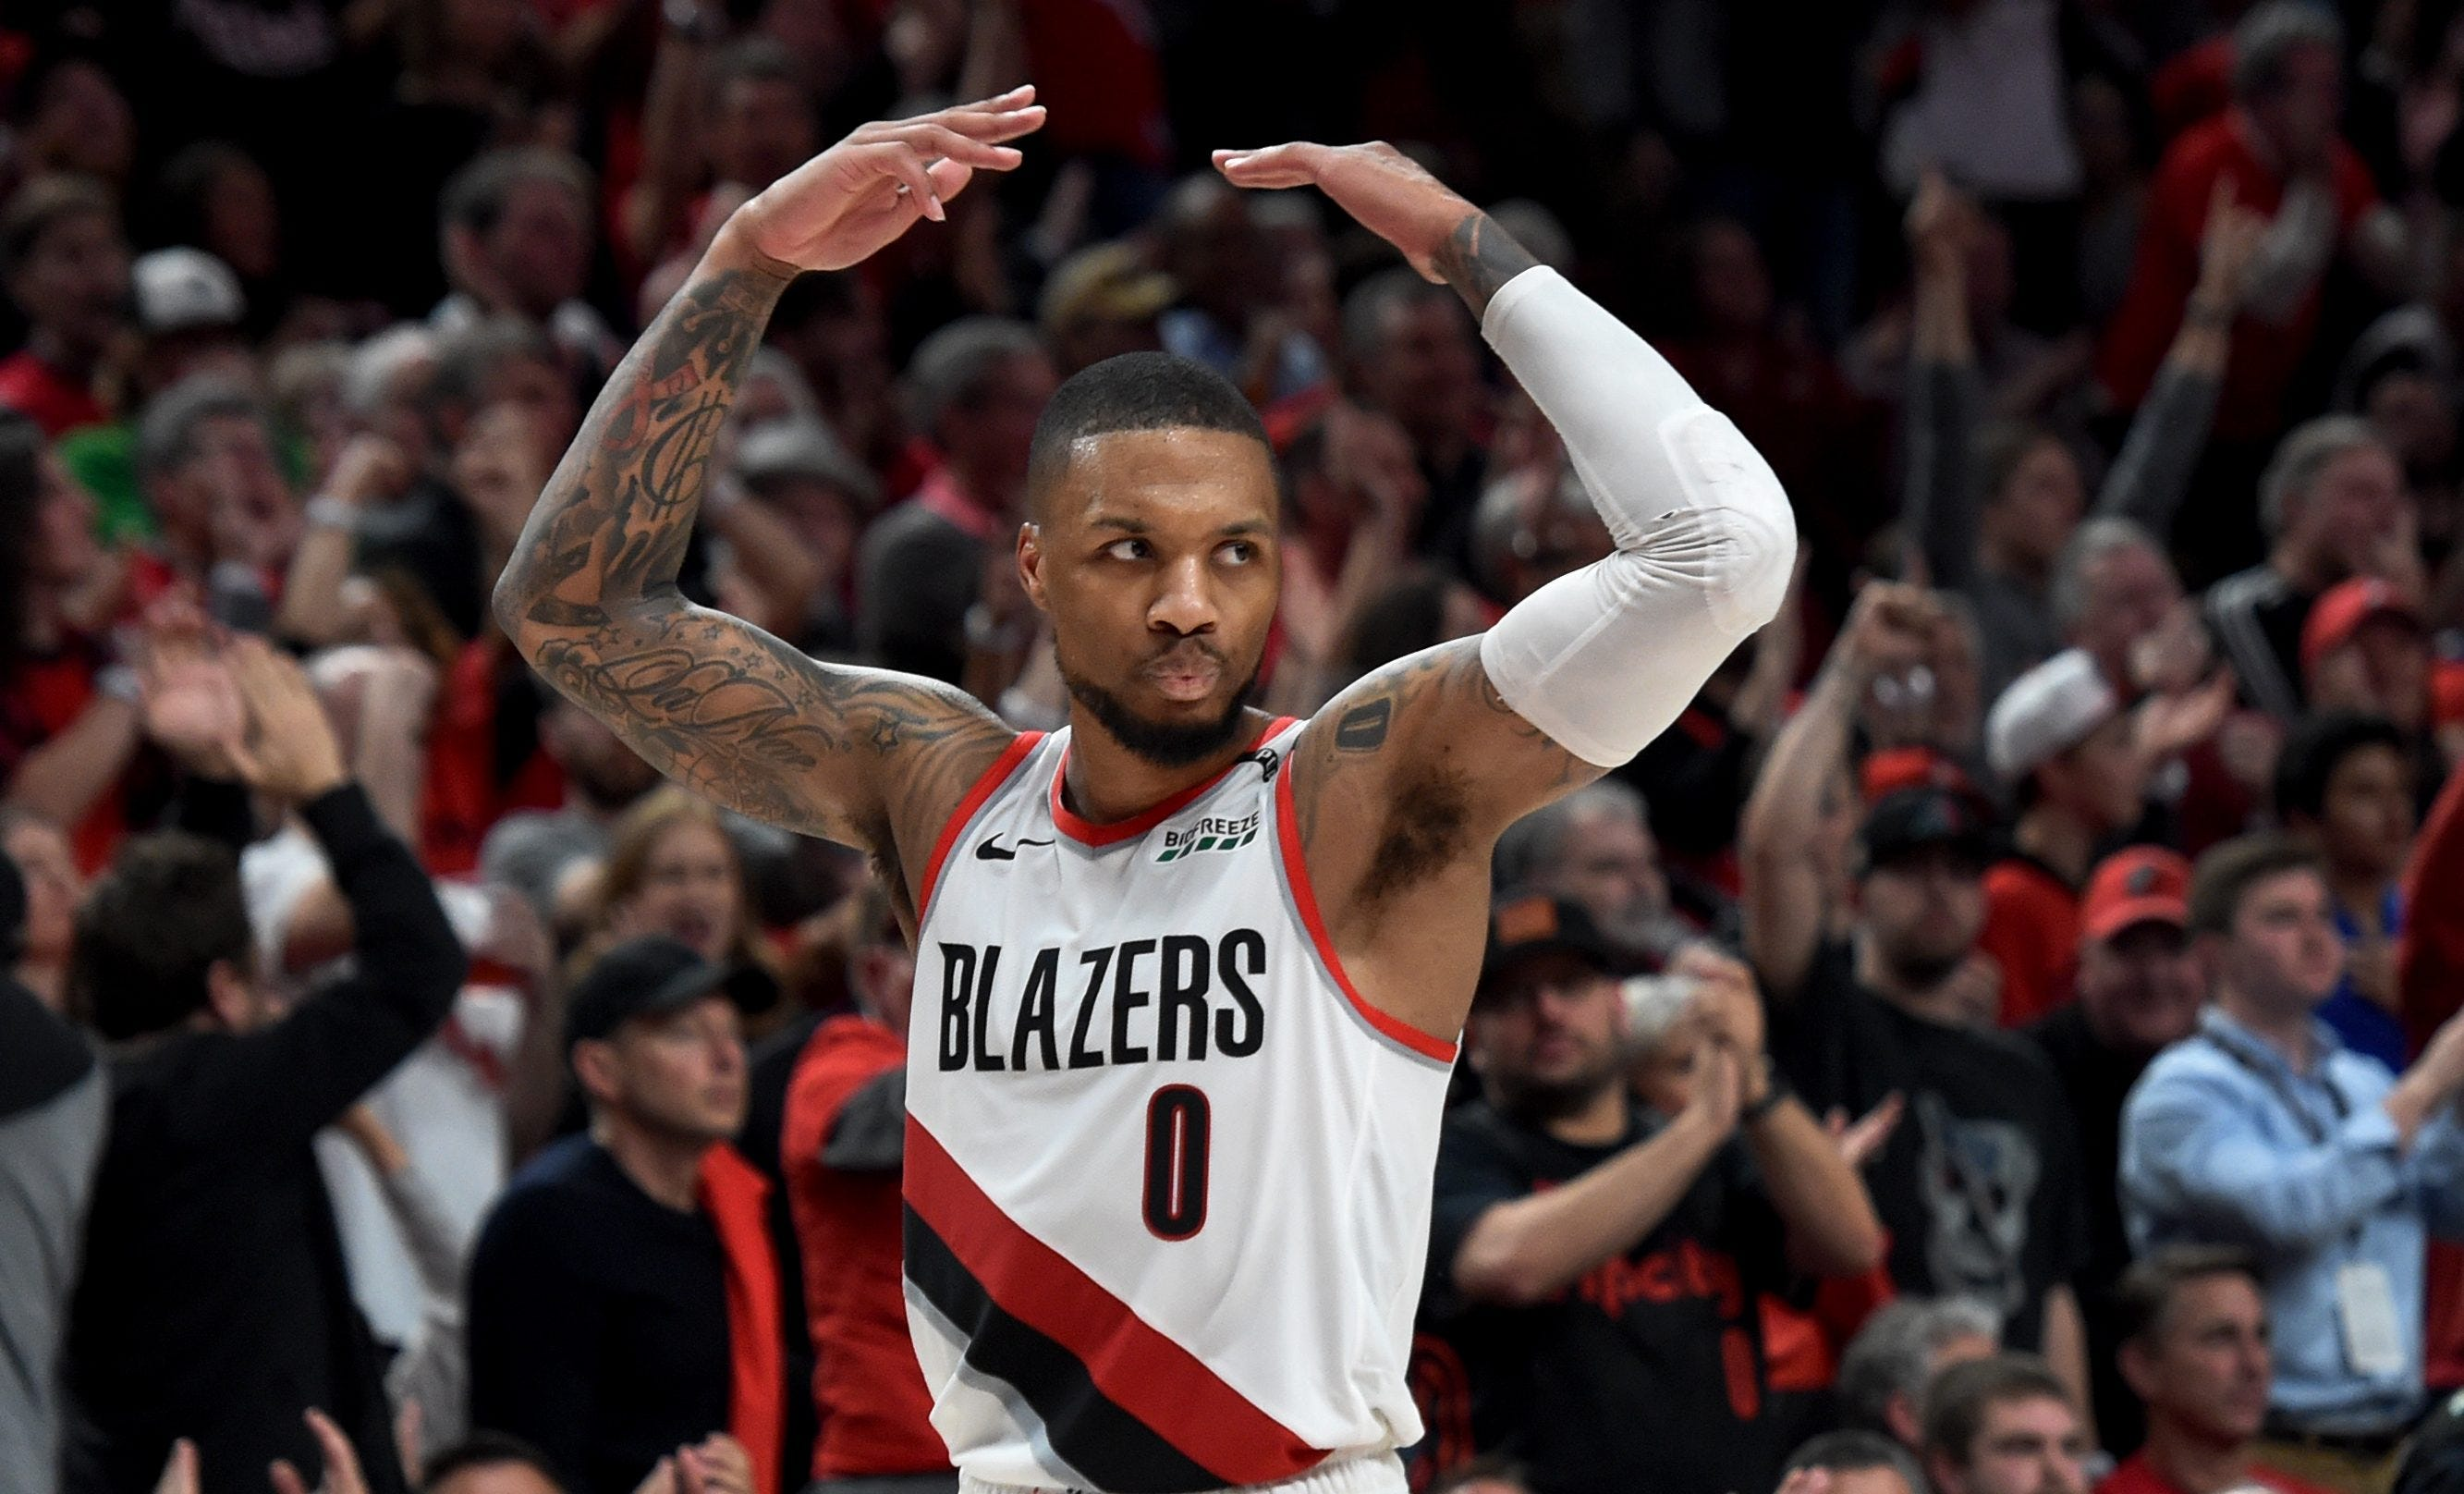 Damian Lillard is taking apart Russell Westbrook and the Thunder